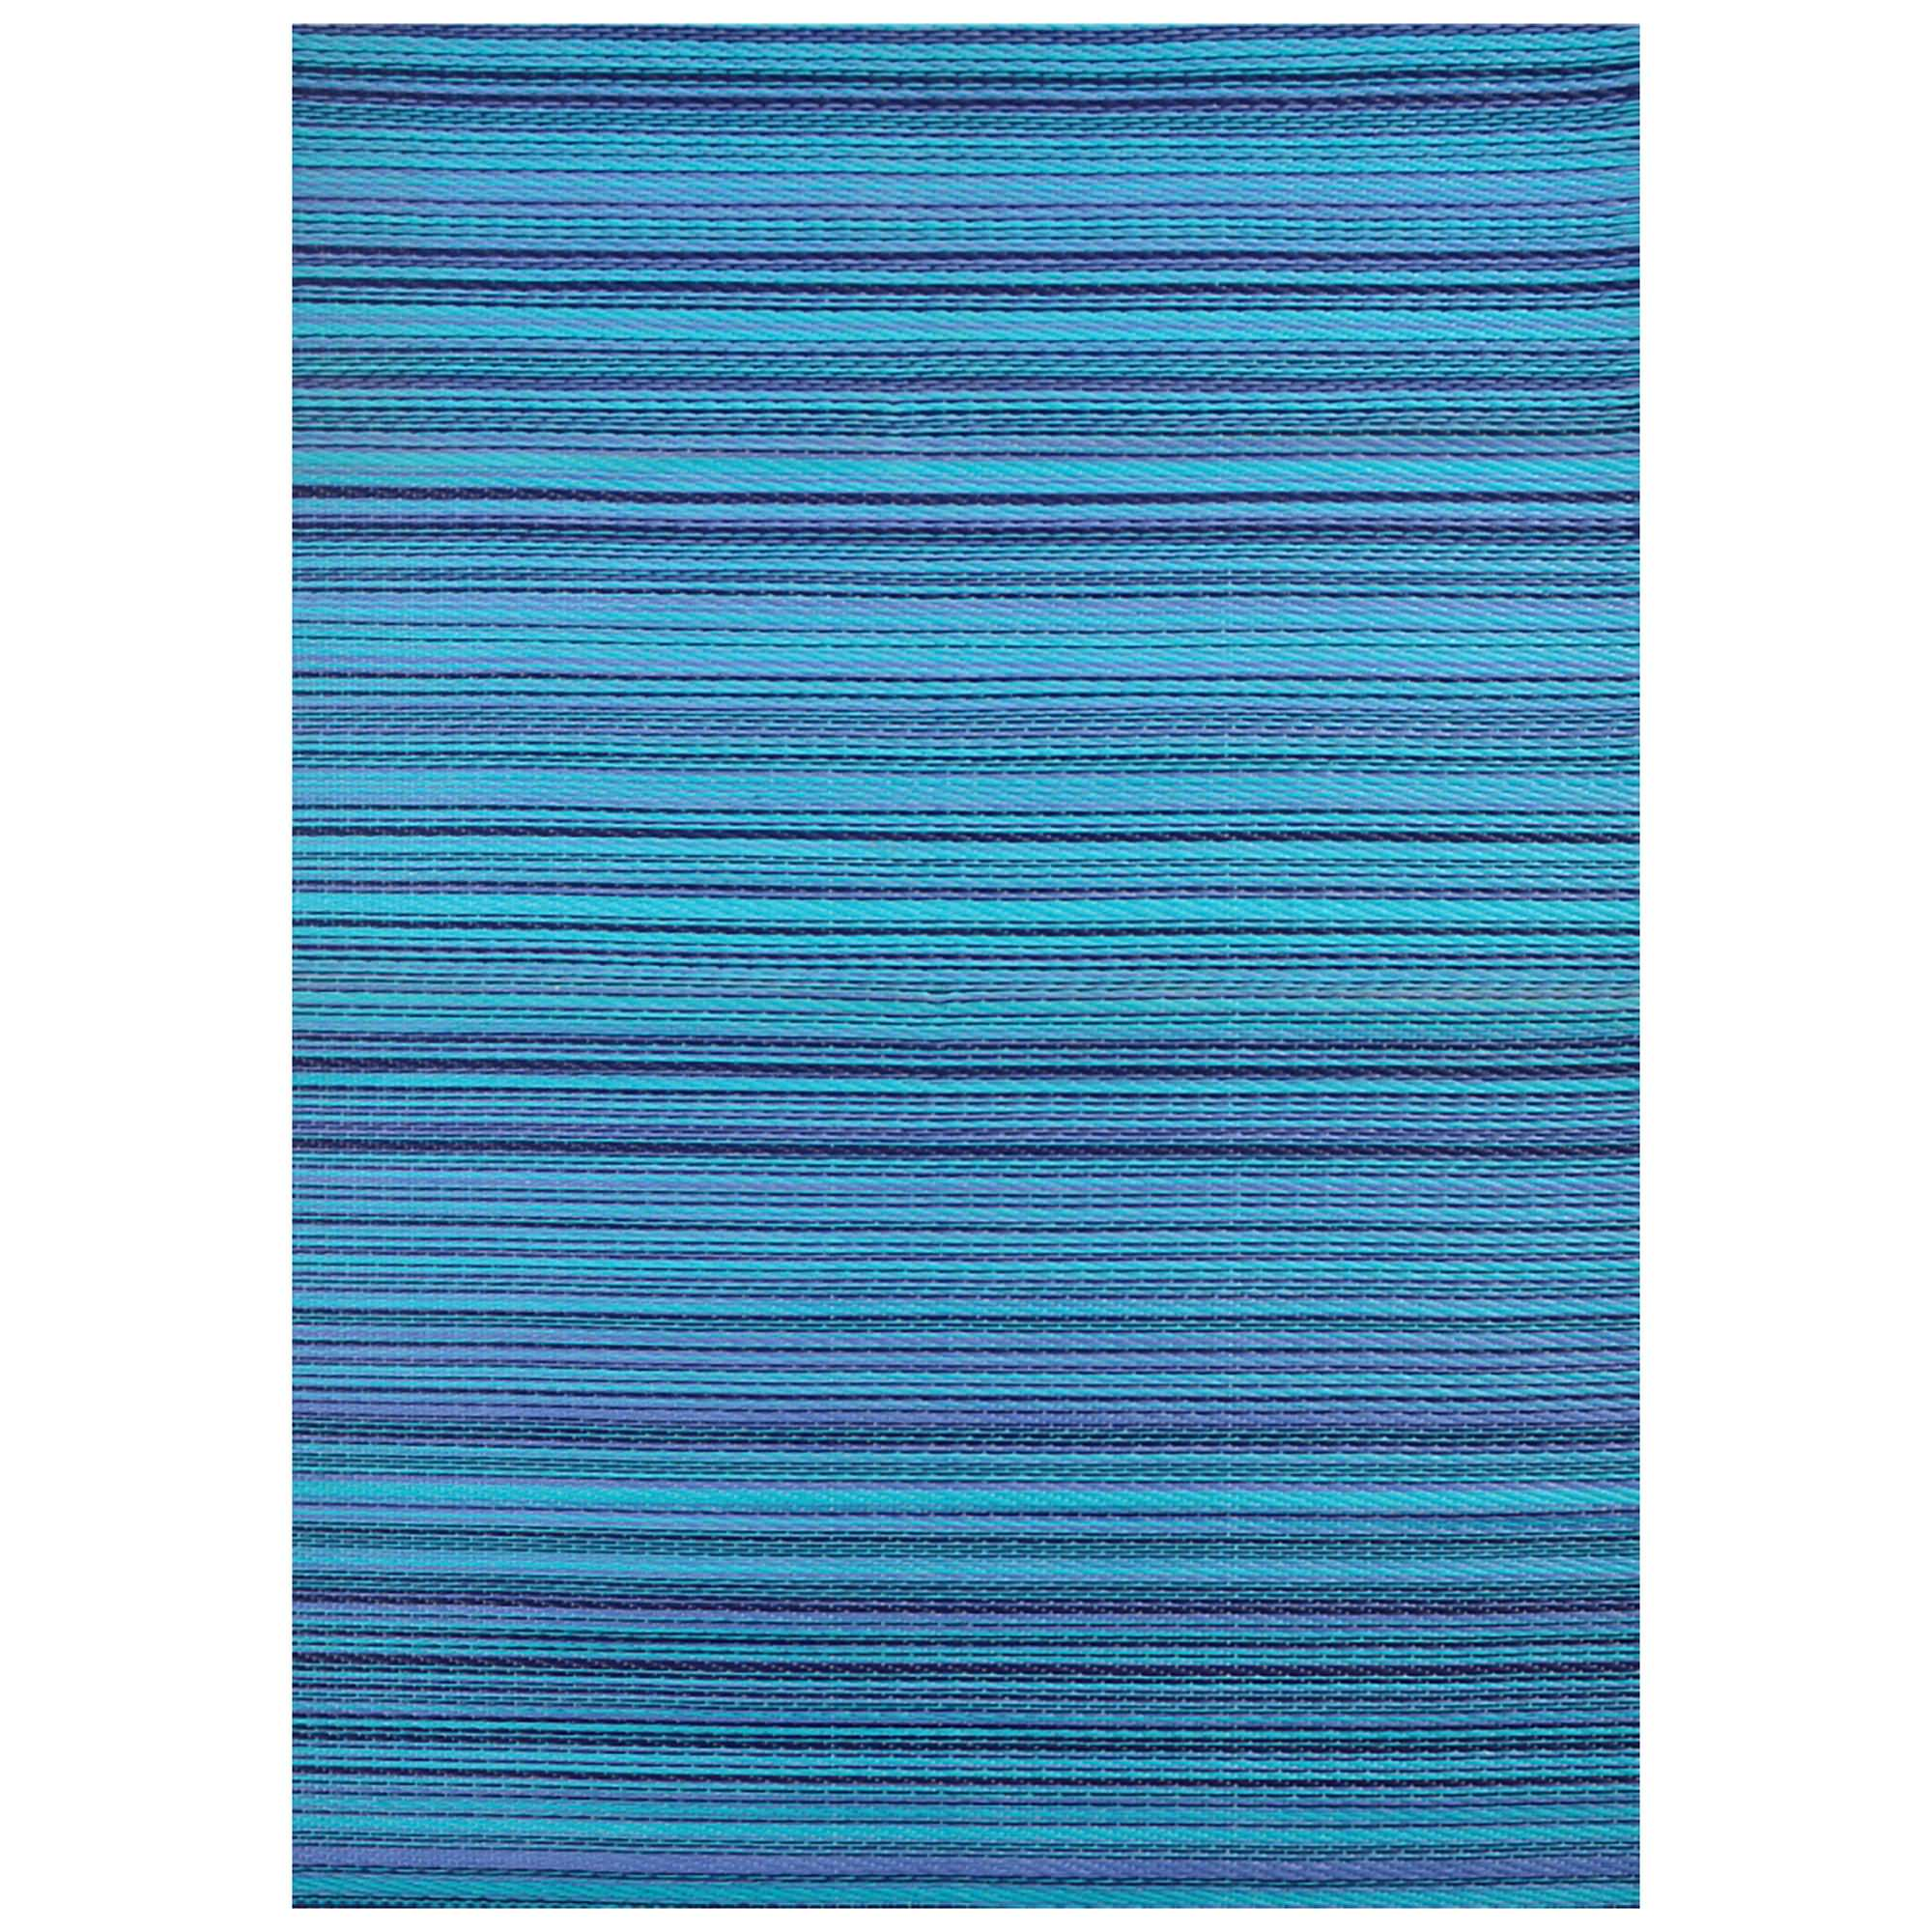 Chatai Rongoli Reversible Outdoor Rug, 150x90cm, Blue